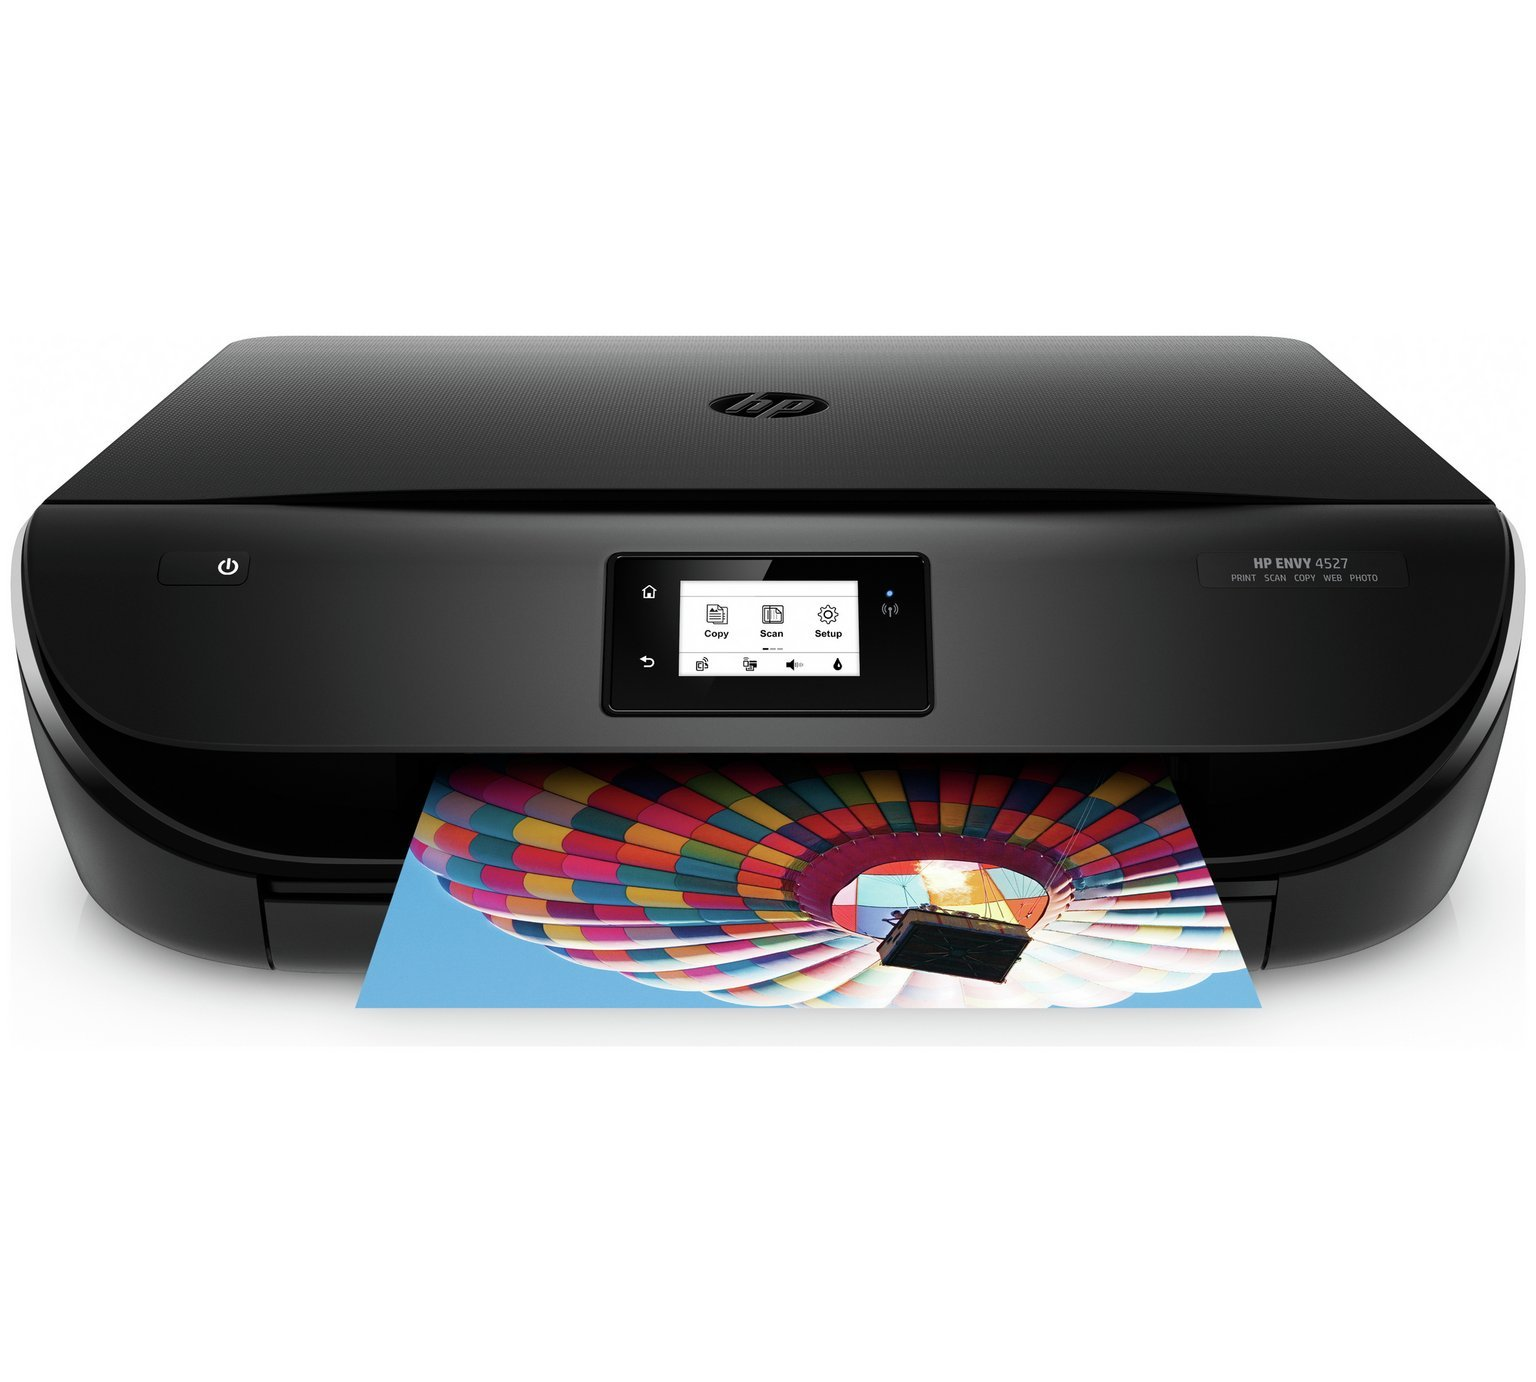 HP Envy 4527 Wireless All-in-One Printer